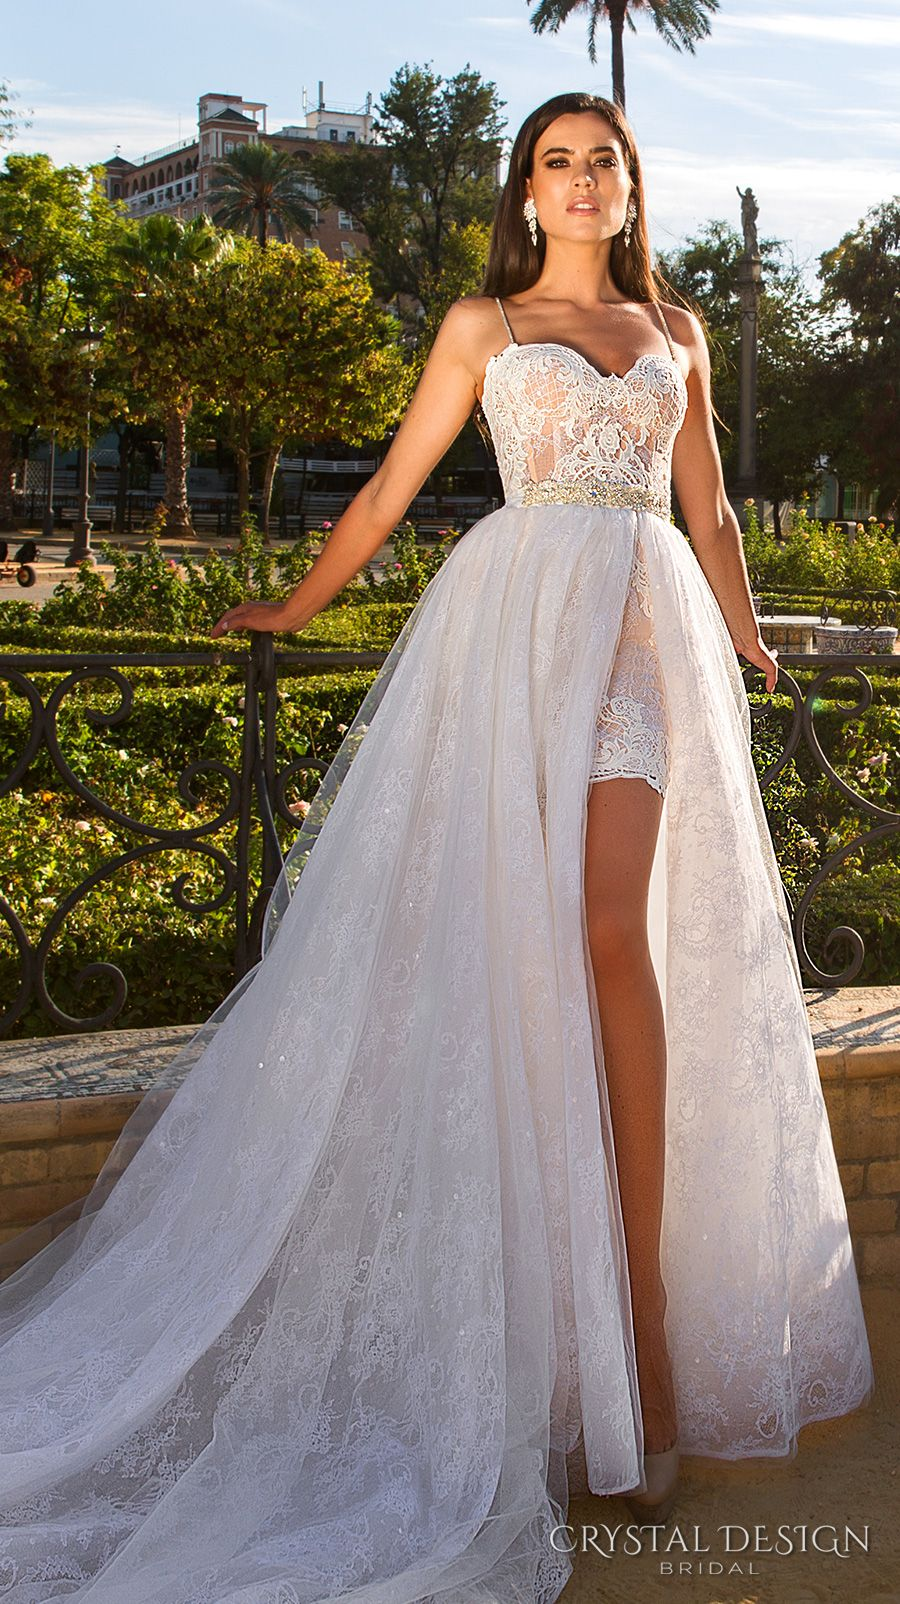 Beautiful Wedding Dresses From The 2017 Crystal Design Collection Sevilla Bridal Campaign Wedding Inspirasi Short Wedding Dress Wedding Dresses Beautiful Wedding Dresses [ 1604 x 900 Pixel ]